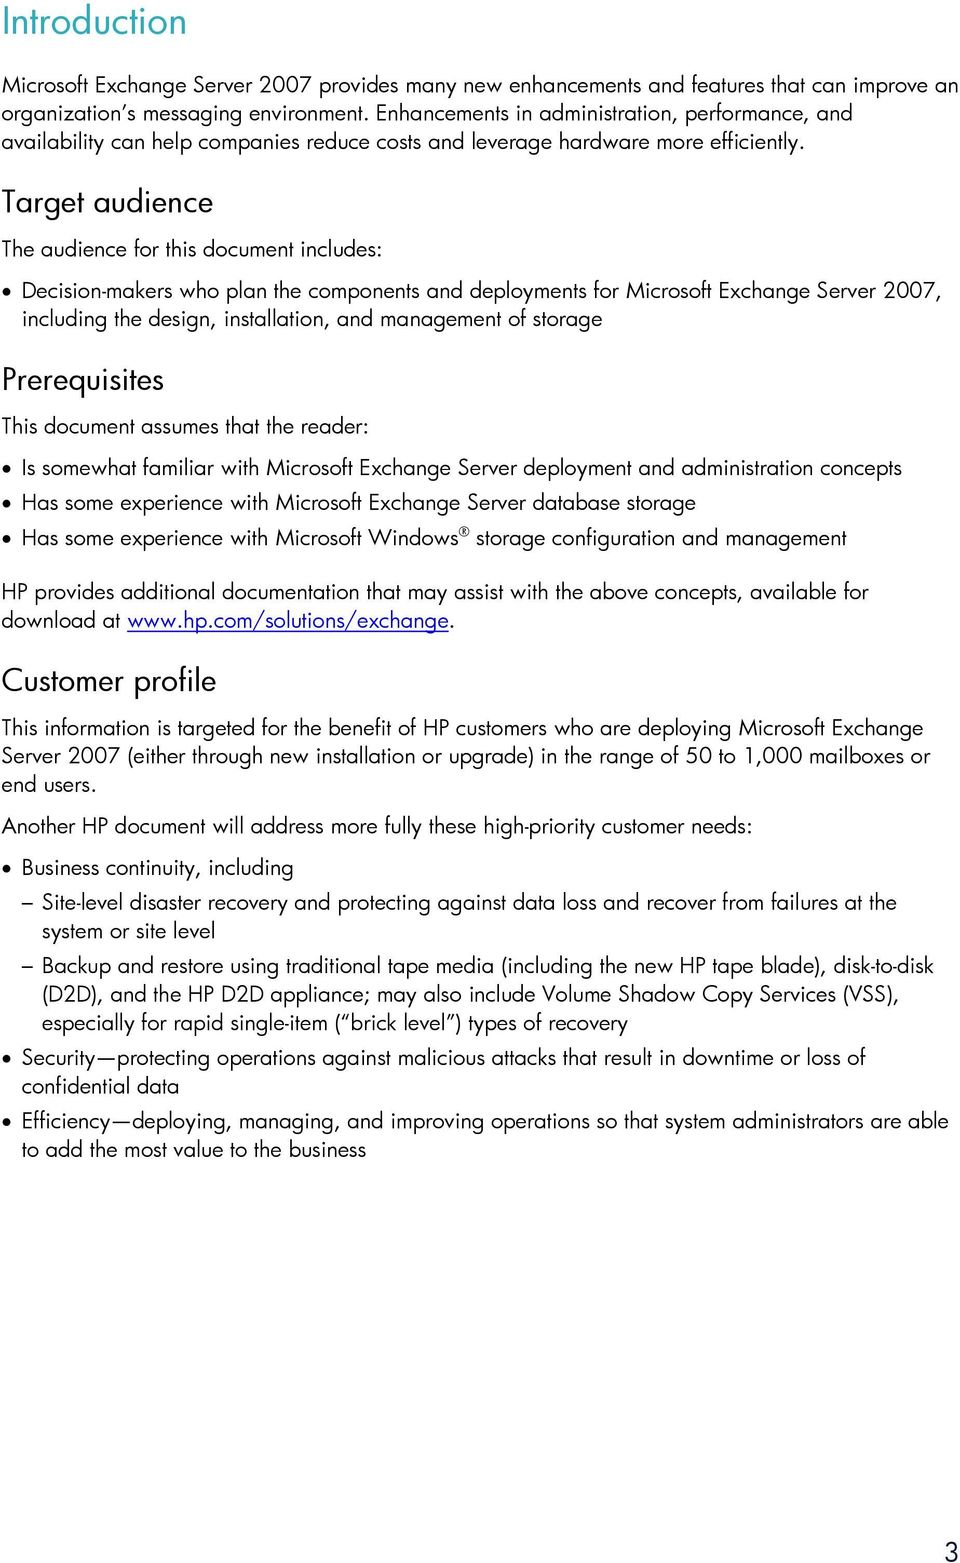 Target audience The audience for this document includes: Decision-makers who plan the components and deployments for Microsoft Exchange Server 2007, including the design, installation, and management